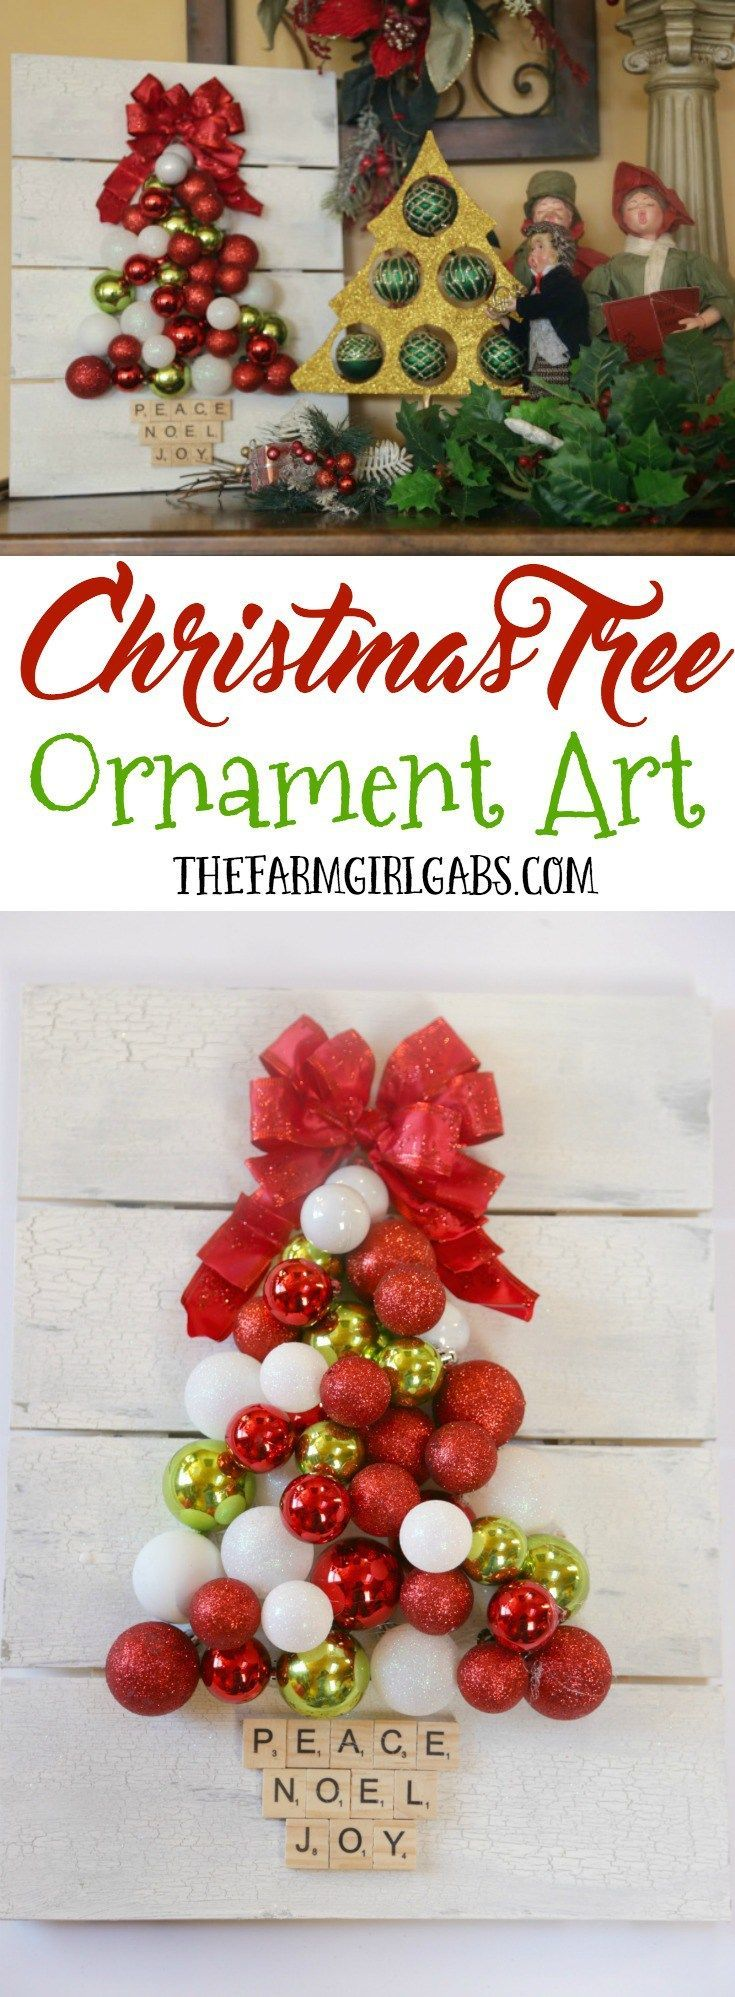 Ready rats diy mini scrapbook my crafts and diy projects - Make It Shine This Holiday Season With The Simple Diy Christmas Tree Ornament Art This